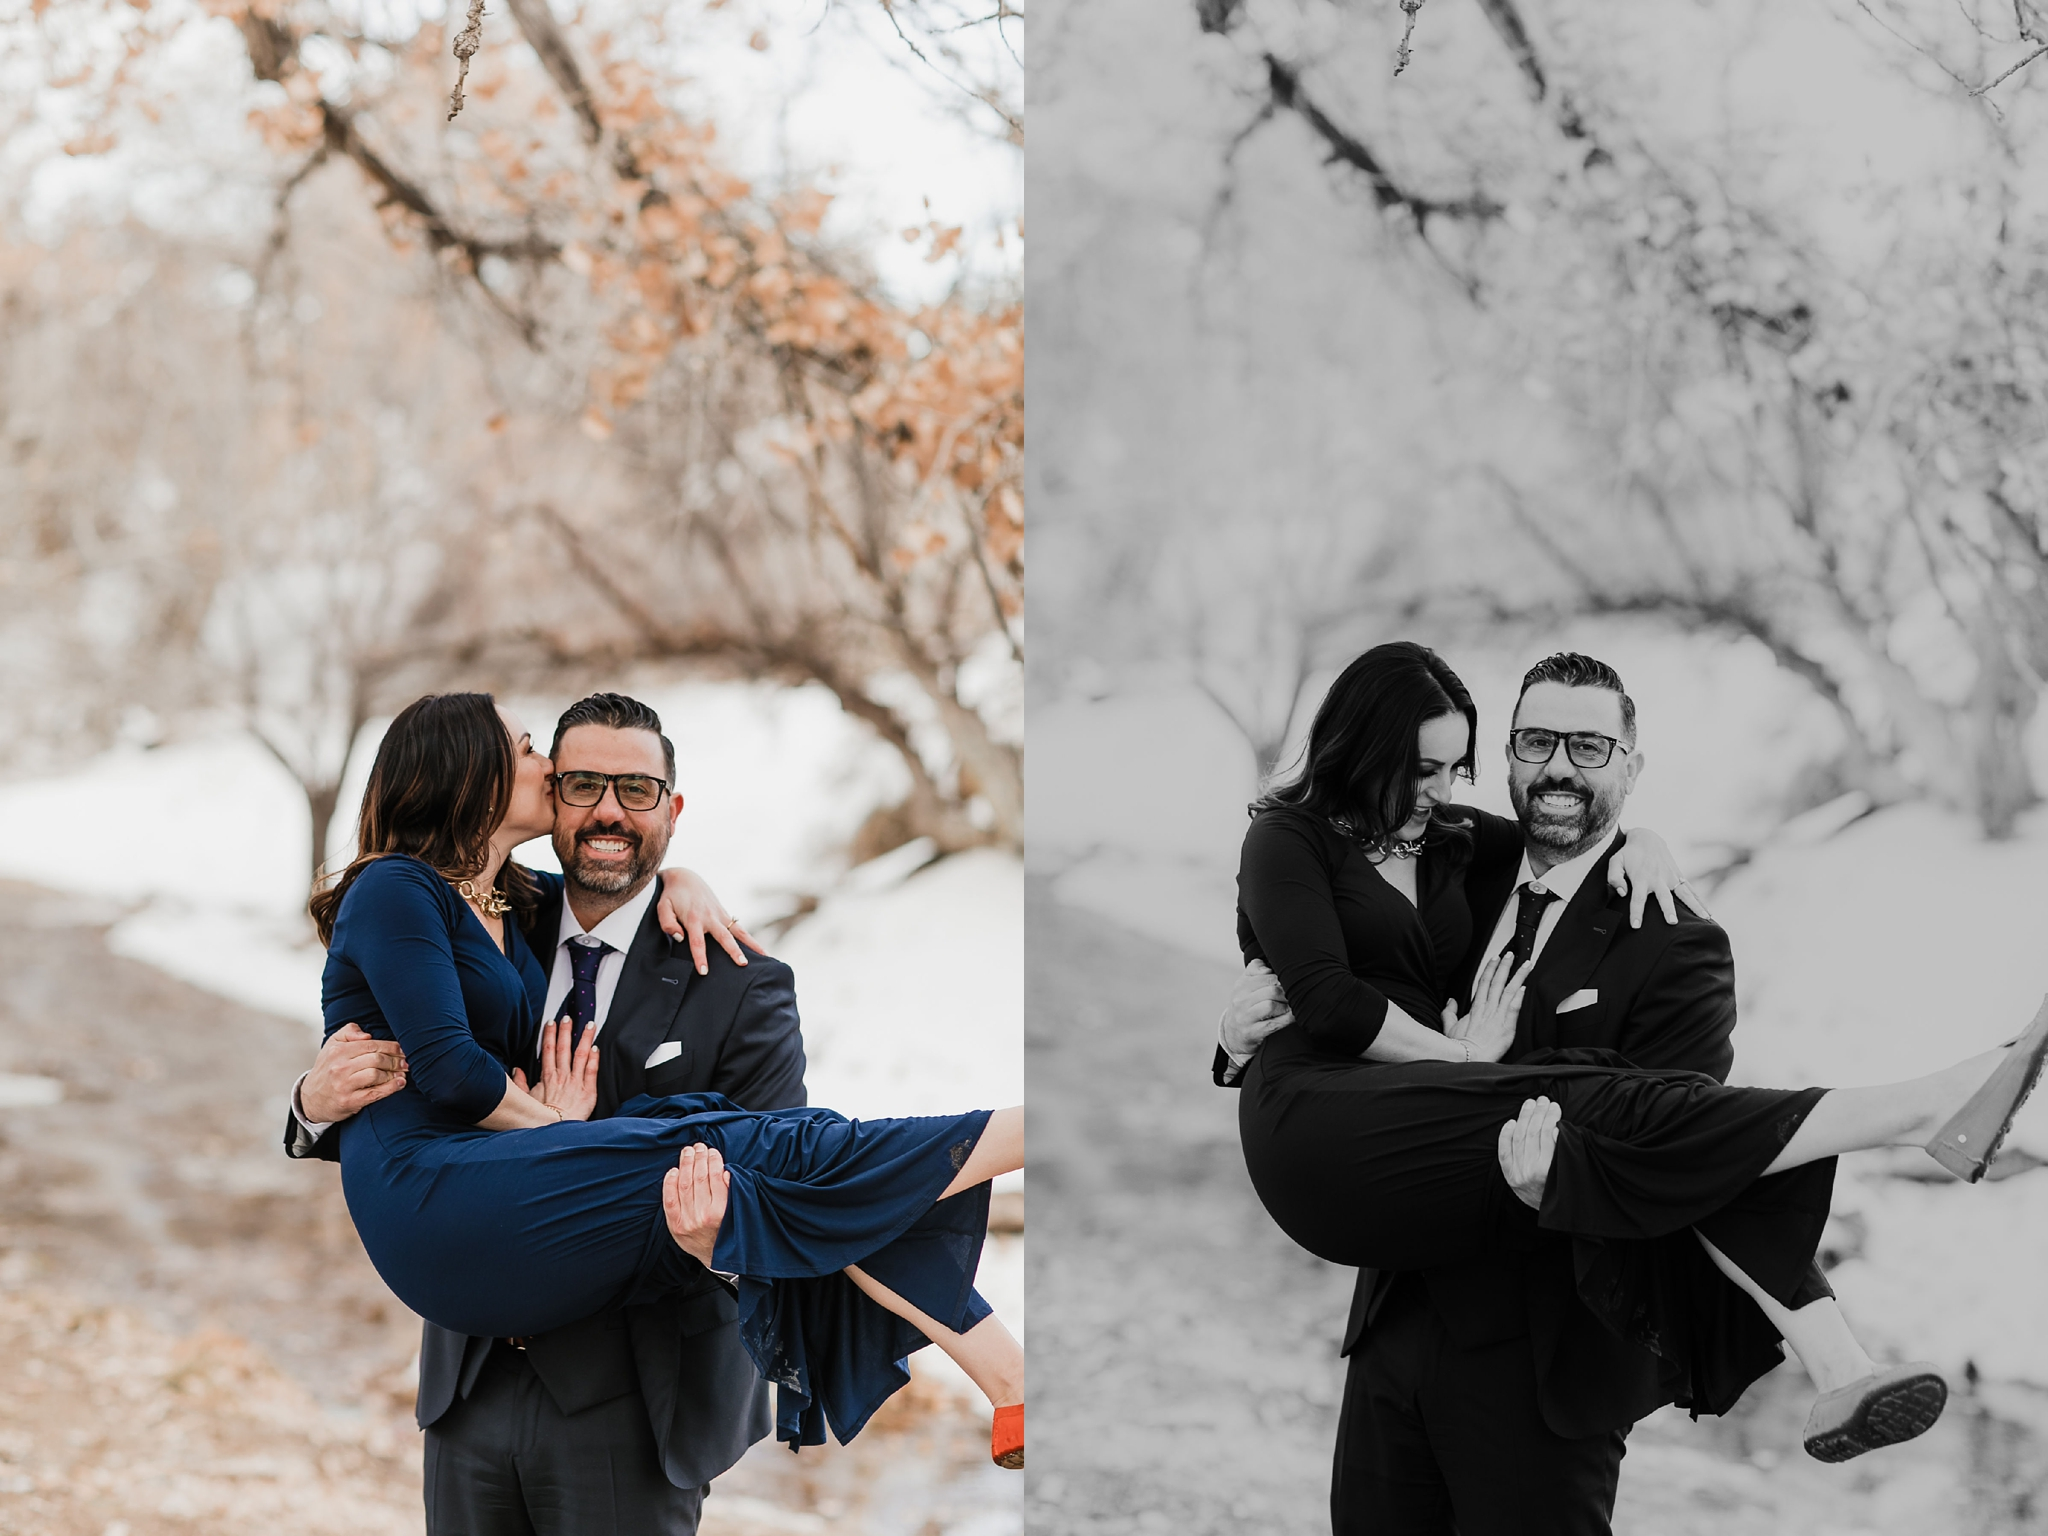 Alicia+lucia+photography+-+albuquerque+wedding+photographer+-+santa+fe+wedding+photography+-+new+mexico+wedding+photographer+-+new+mexico+wedding+-+engagement+-+winter+engagement+-+albuquerque+engagement_0008.jpg